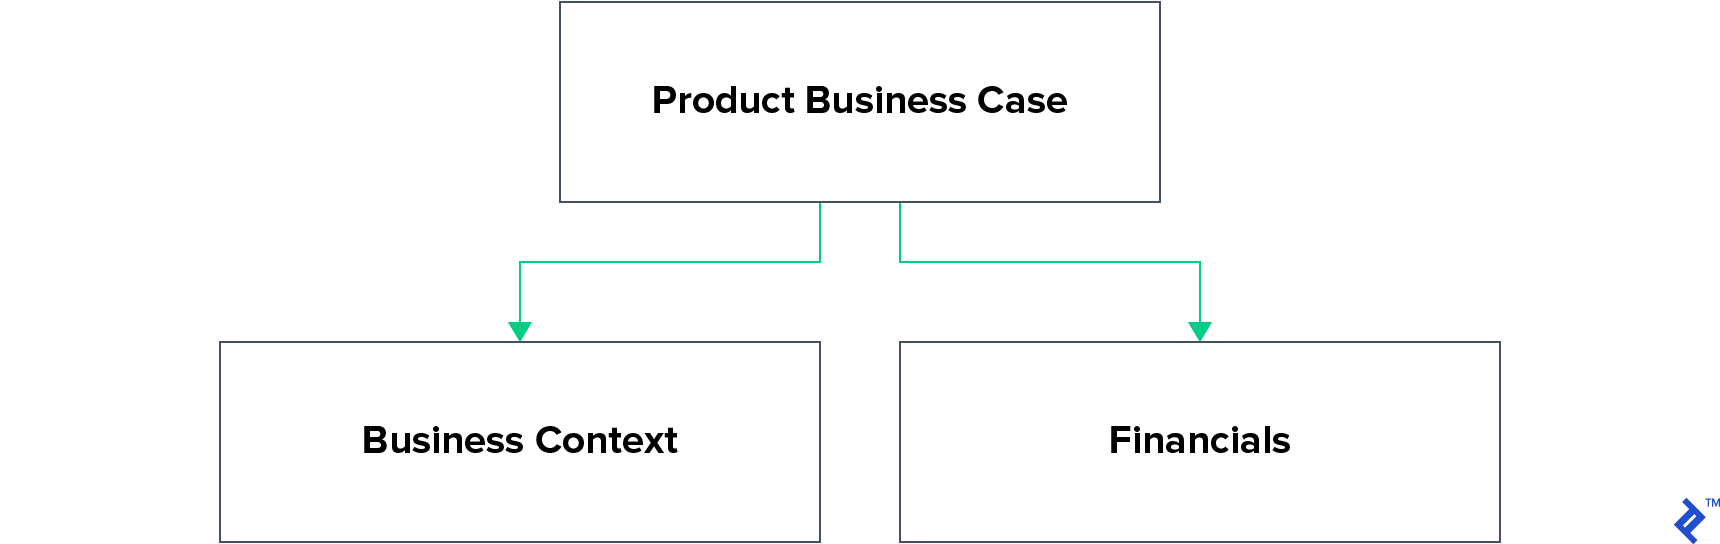 Product business case structure